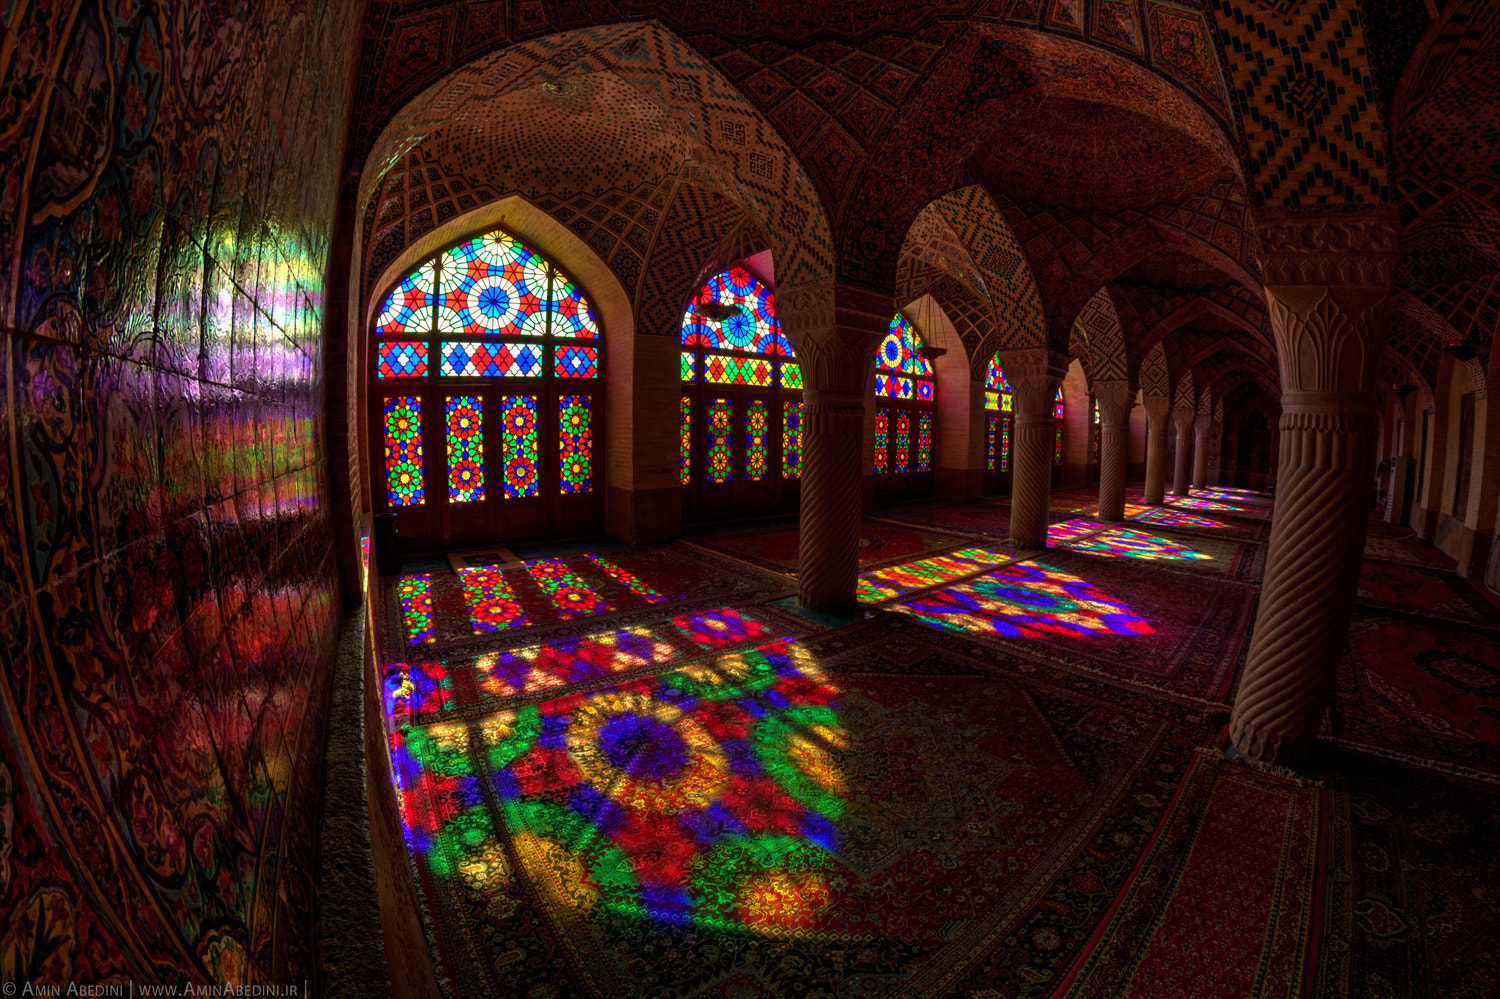 Photograph Mosque Of Colors by Amin Abedini on 500px